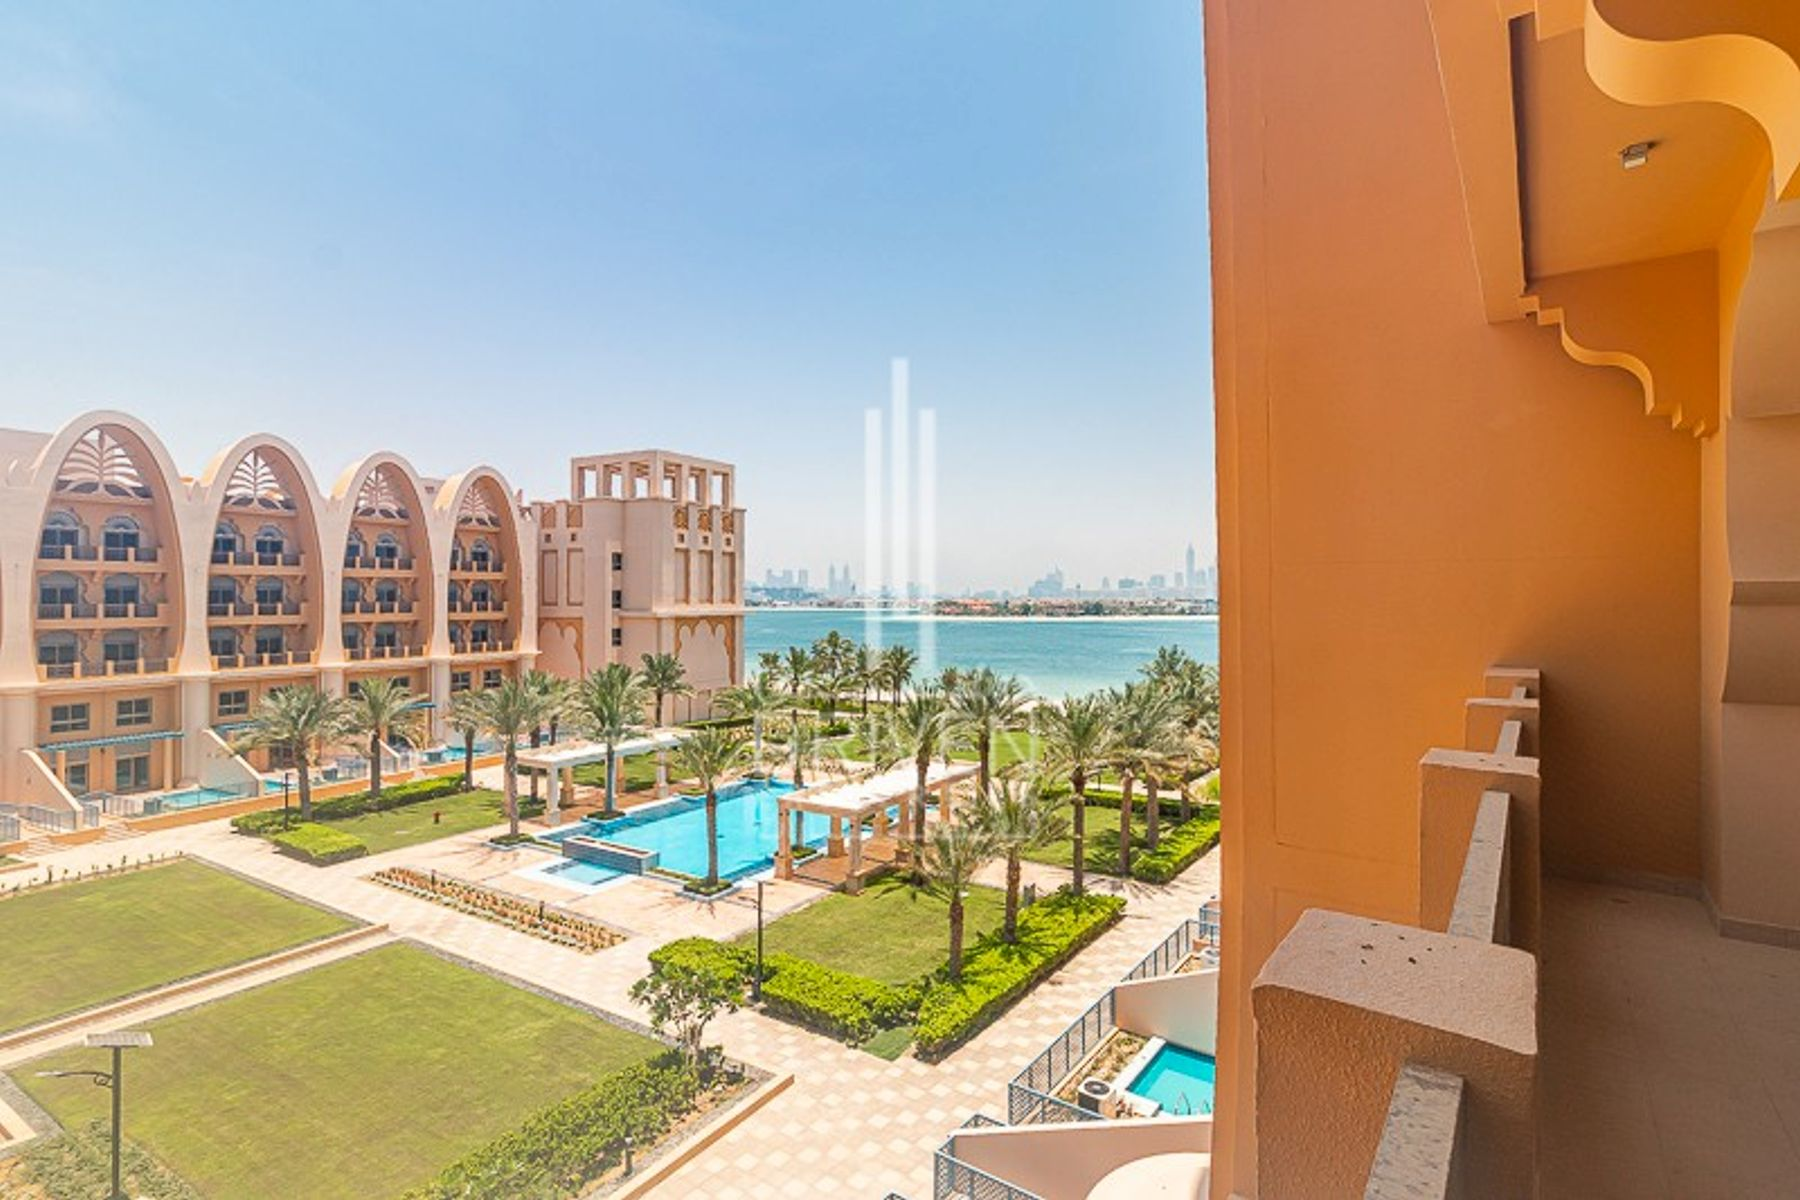 Apartment for Rent in Sarai Apartments, Palm Jumeirah